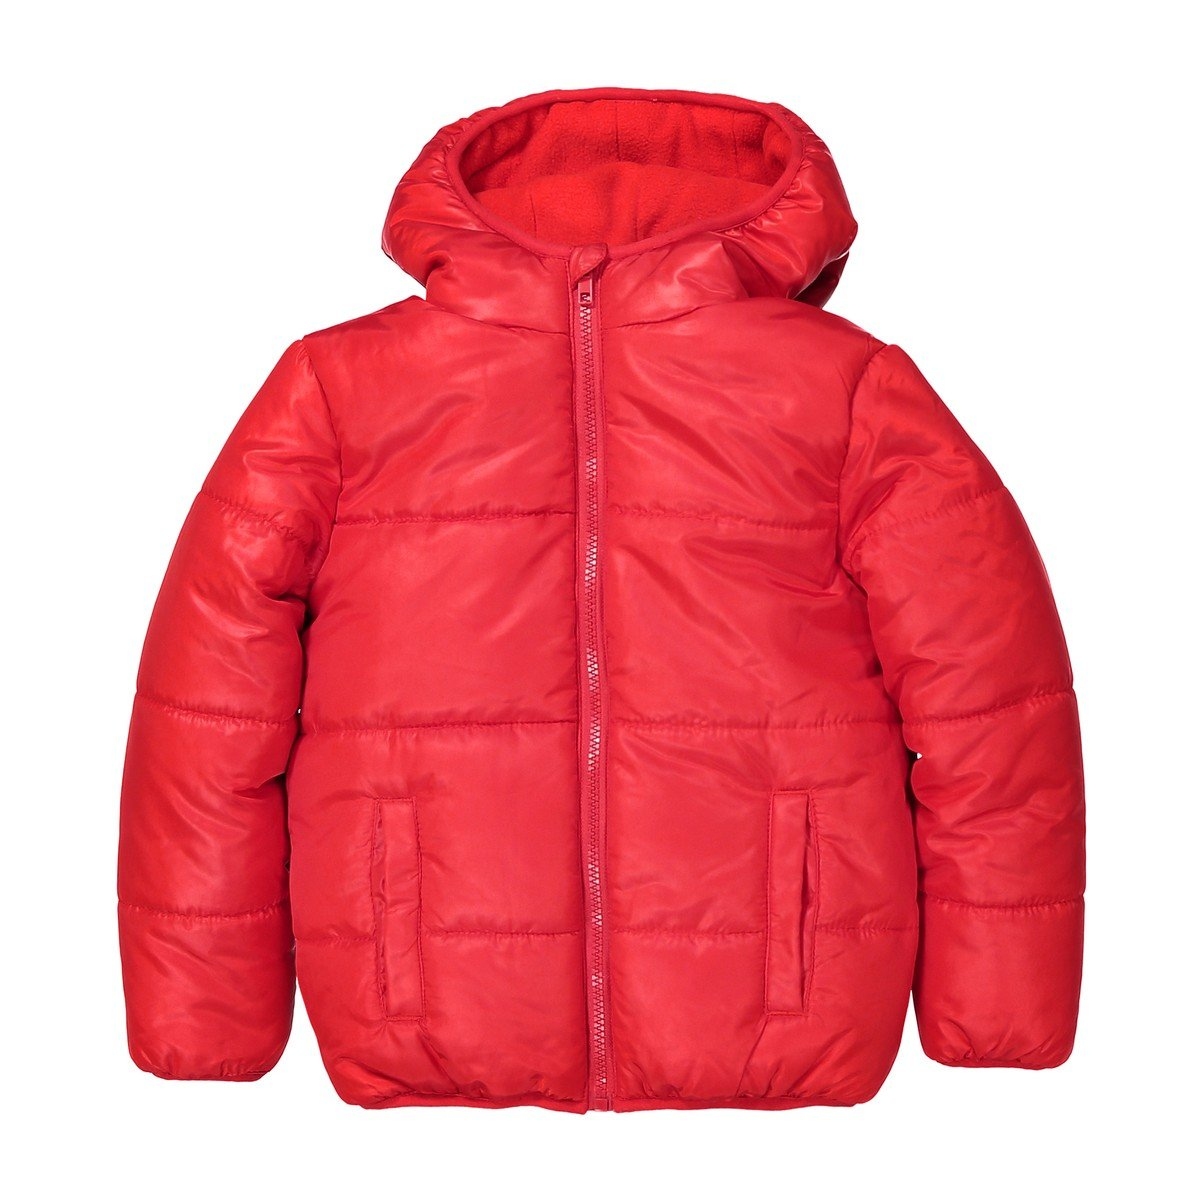 La Redoute Collections Big Boys Fleece-Lined Padded Jacket 3-12 Years